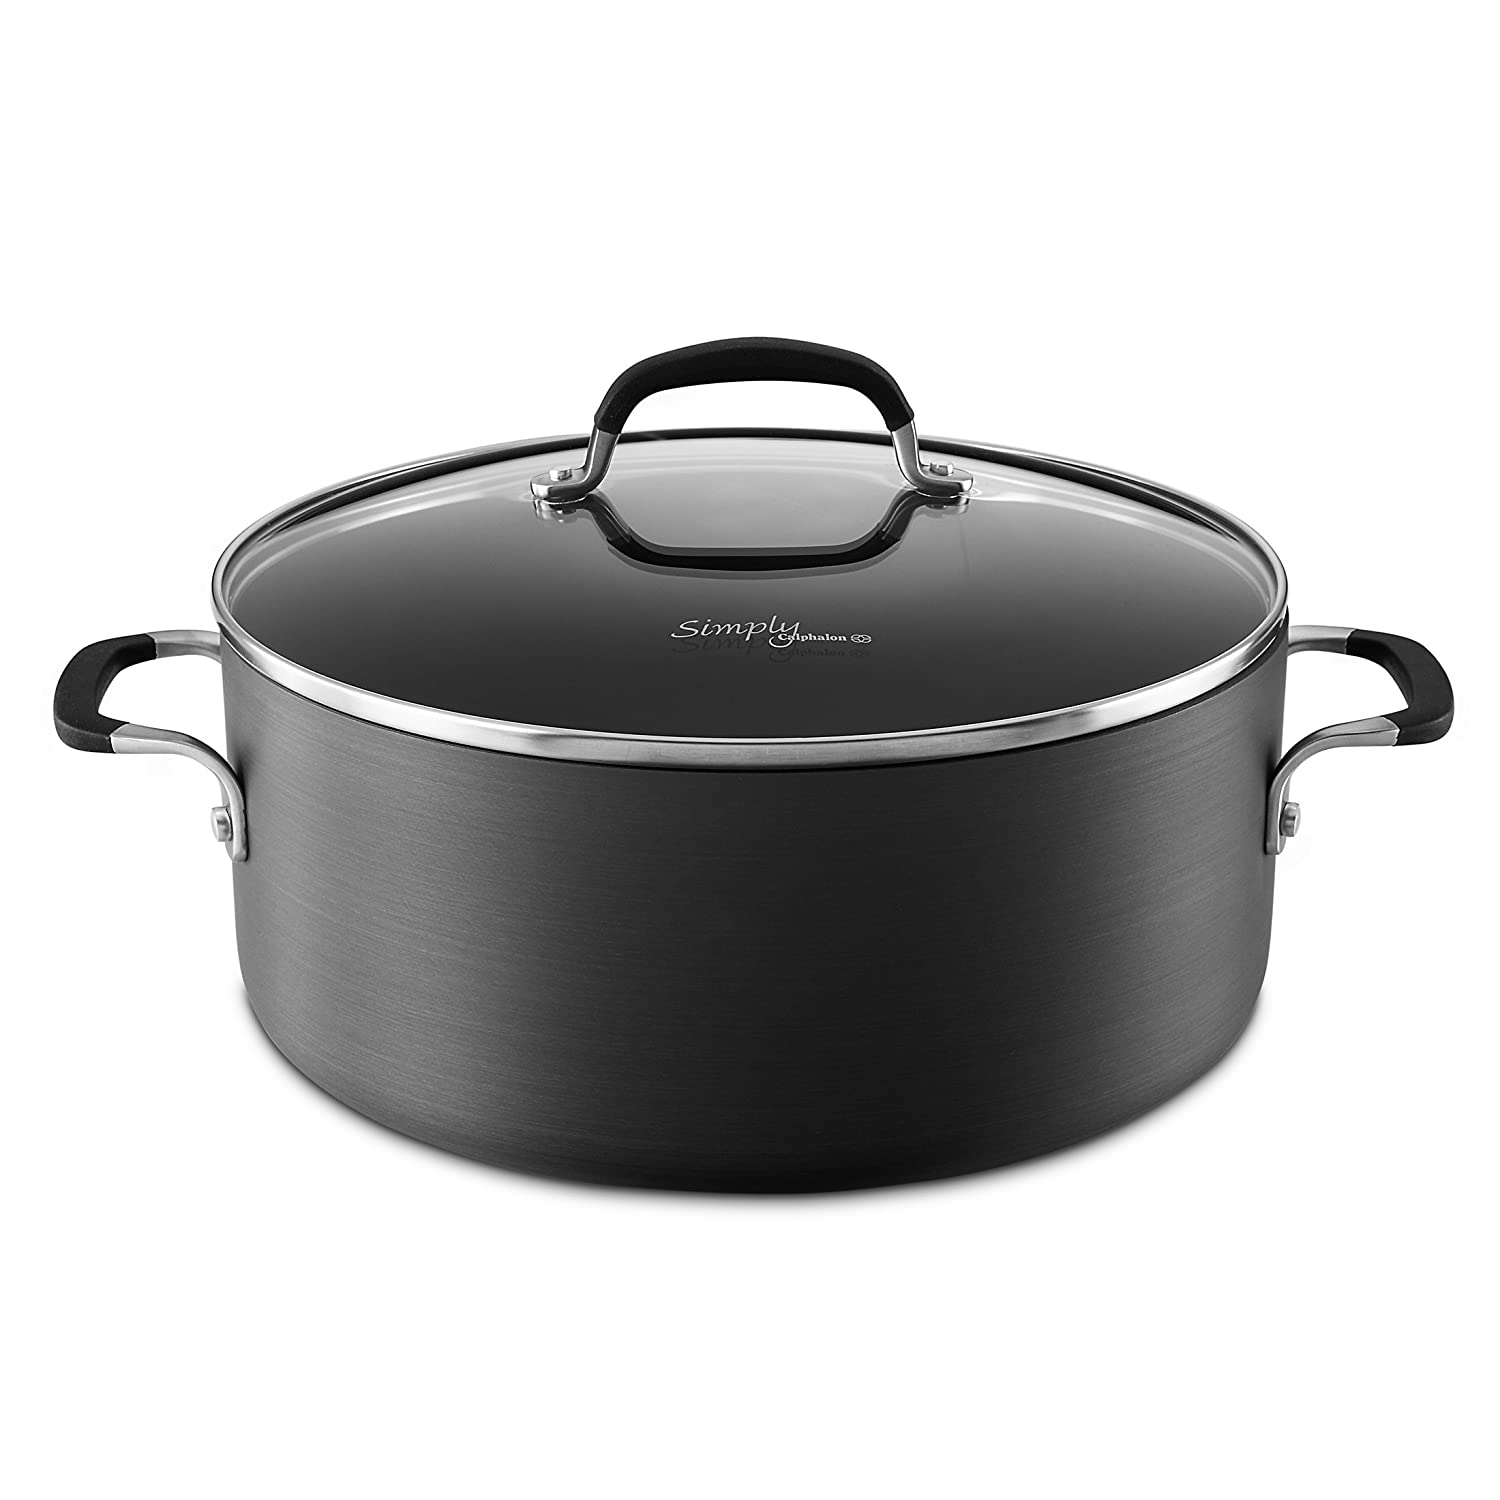 Simply Calphalon Nonstick 7-qt. Dutch Oven and Cover , New ...